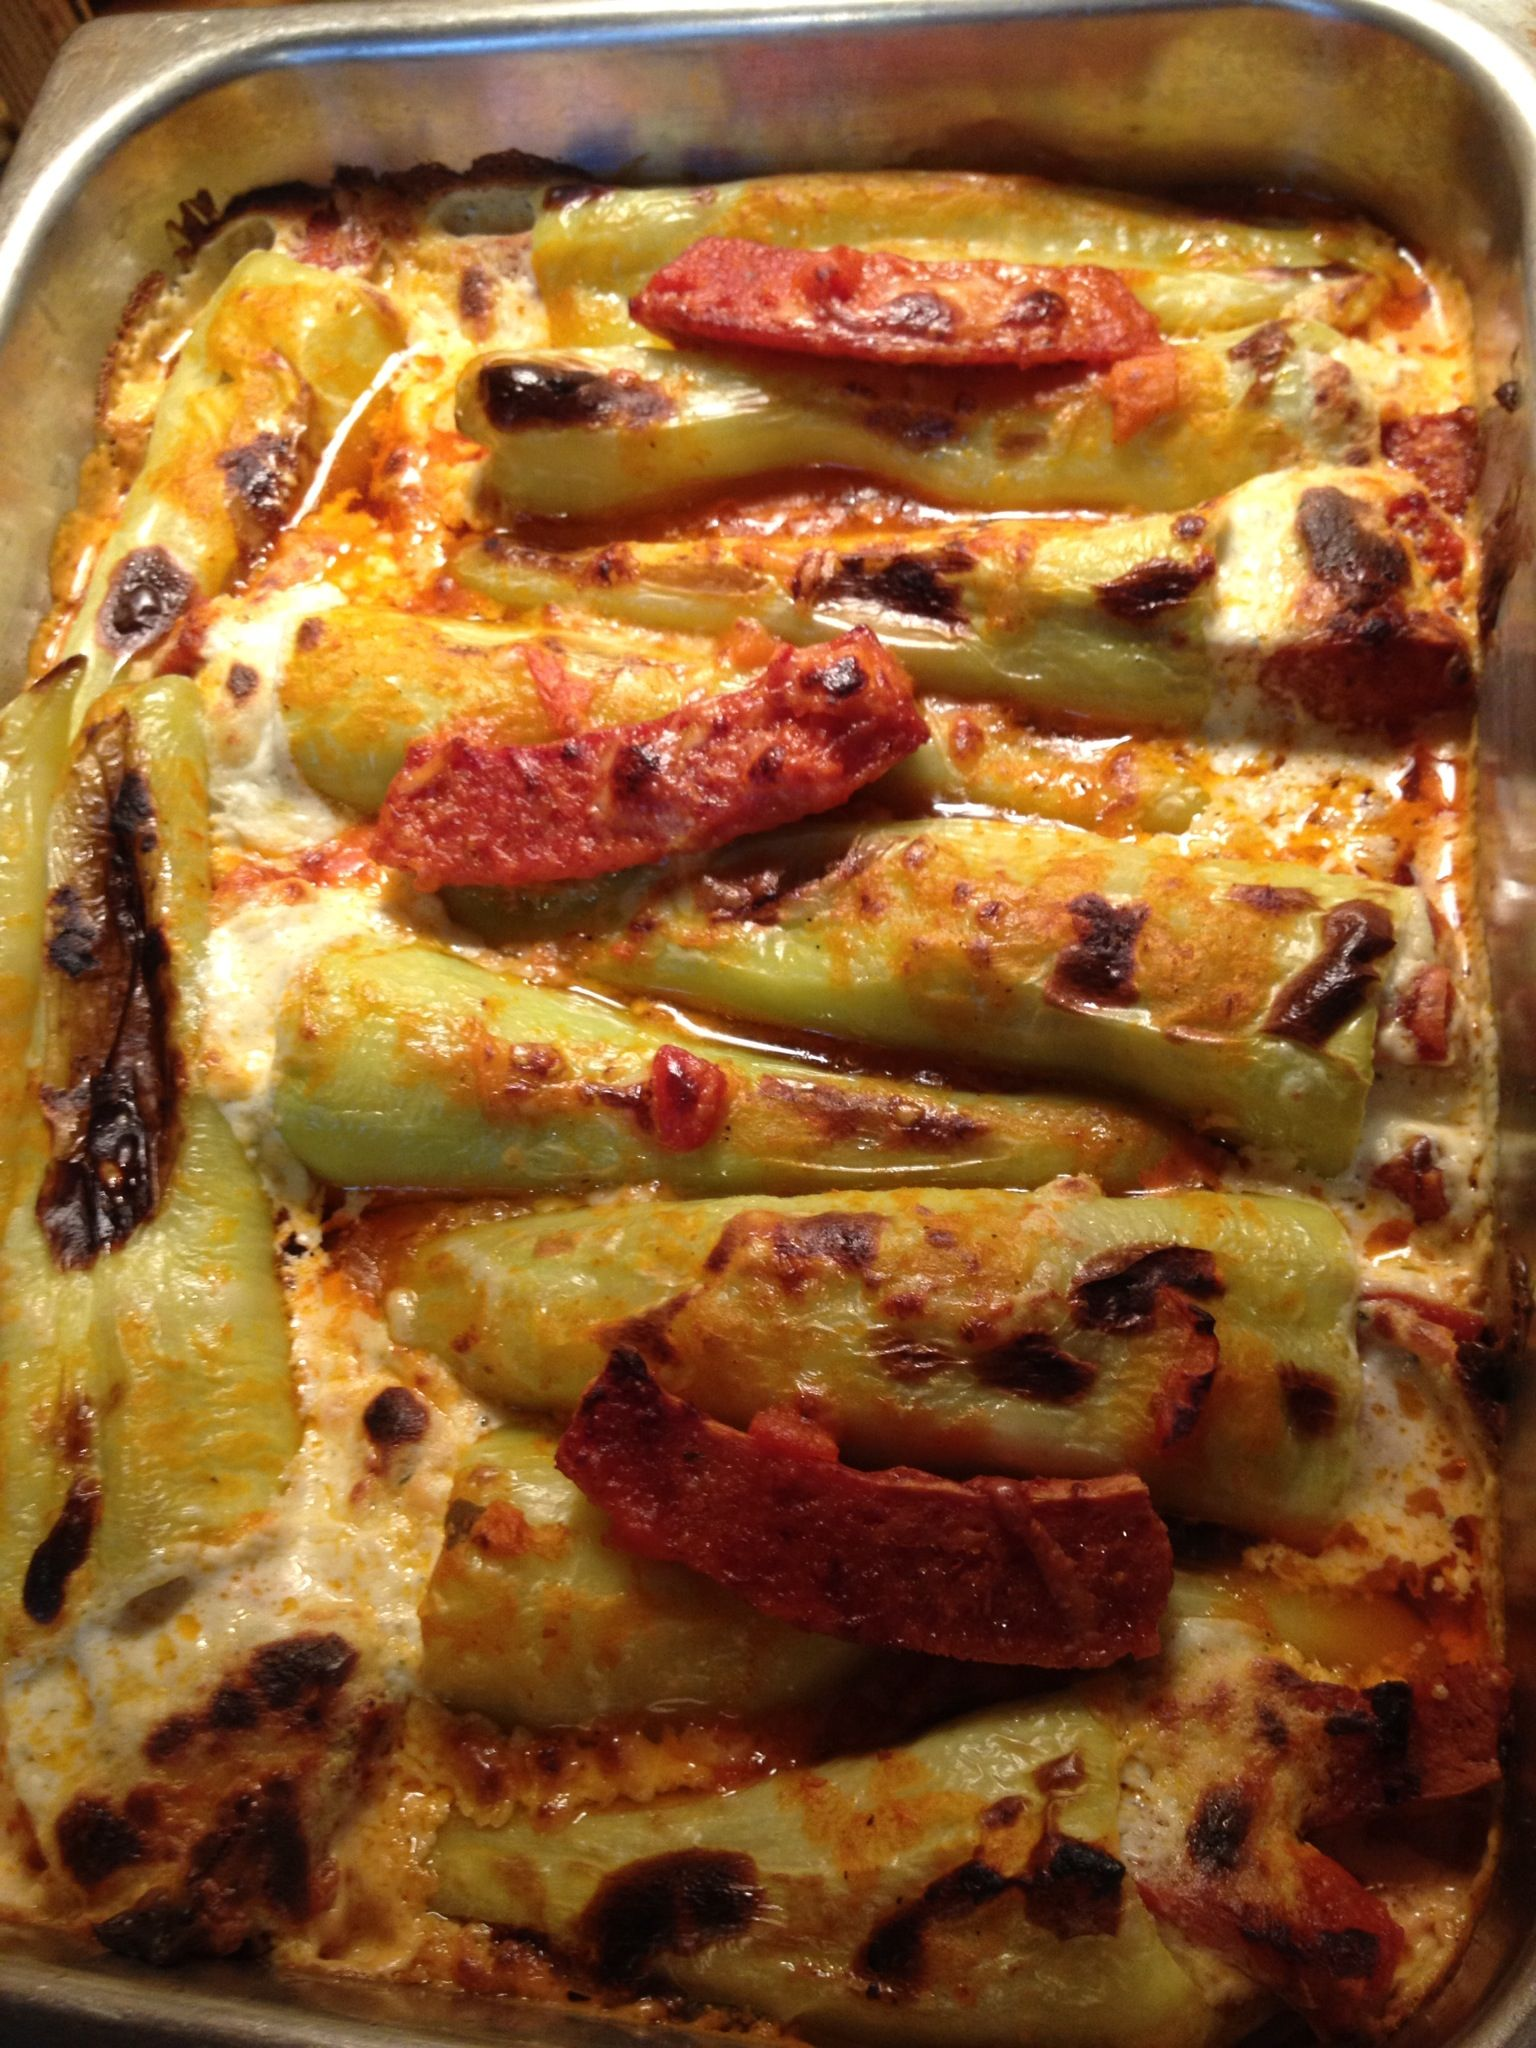 Stuffed Hungarian Wax Peppers In Vodka Sauce With Pepperoni Seasoned Cream Cheese And Manchego Cheese Stuffed Peppers Peppers Recipes Low Carb Diet Recipes